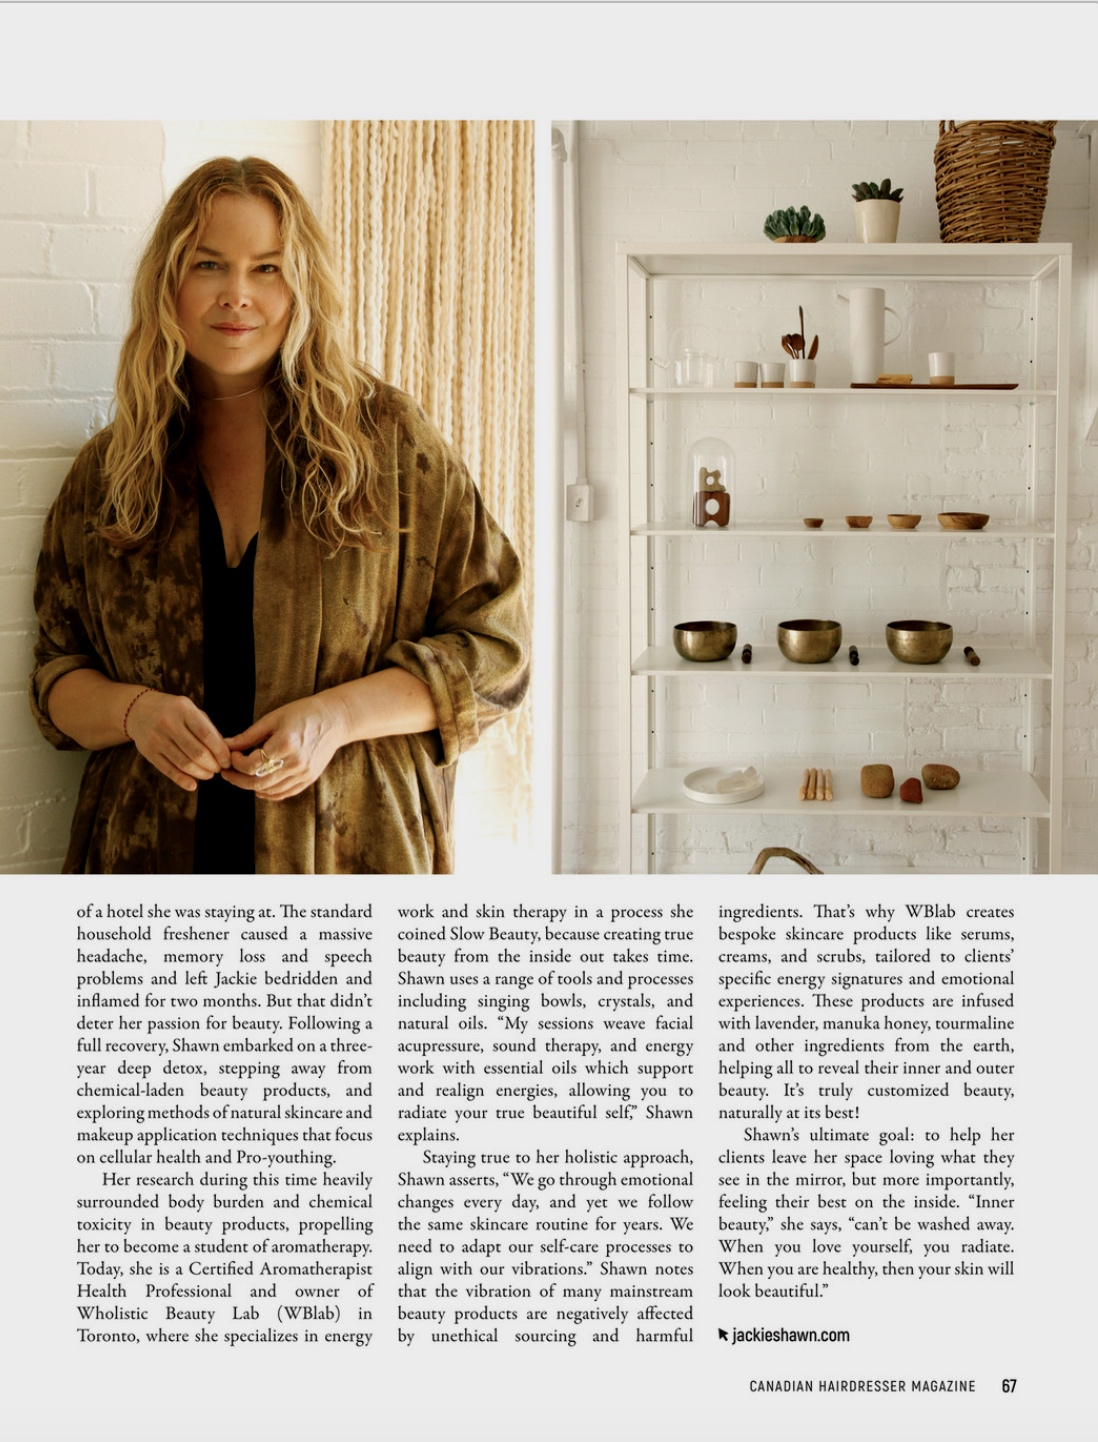 JackieShawn-CDN-hairdresserMAG-article.pg2.jpg